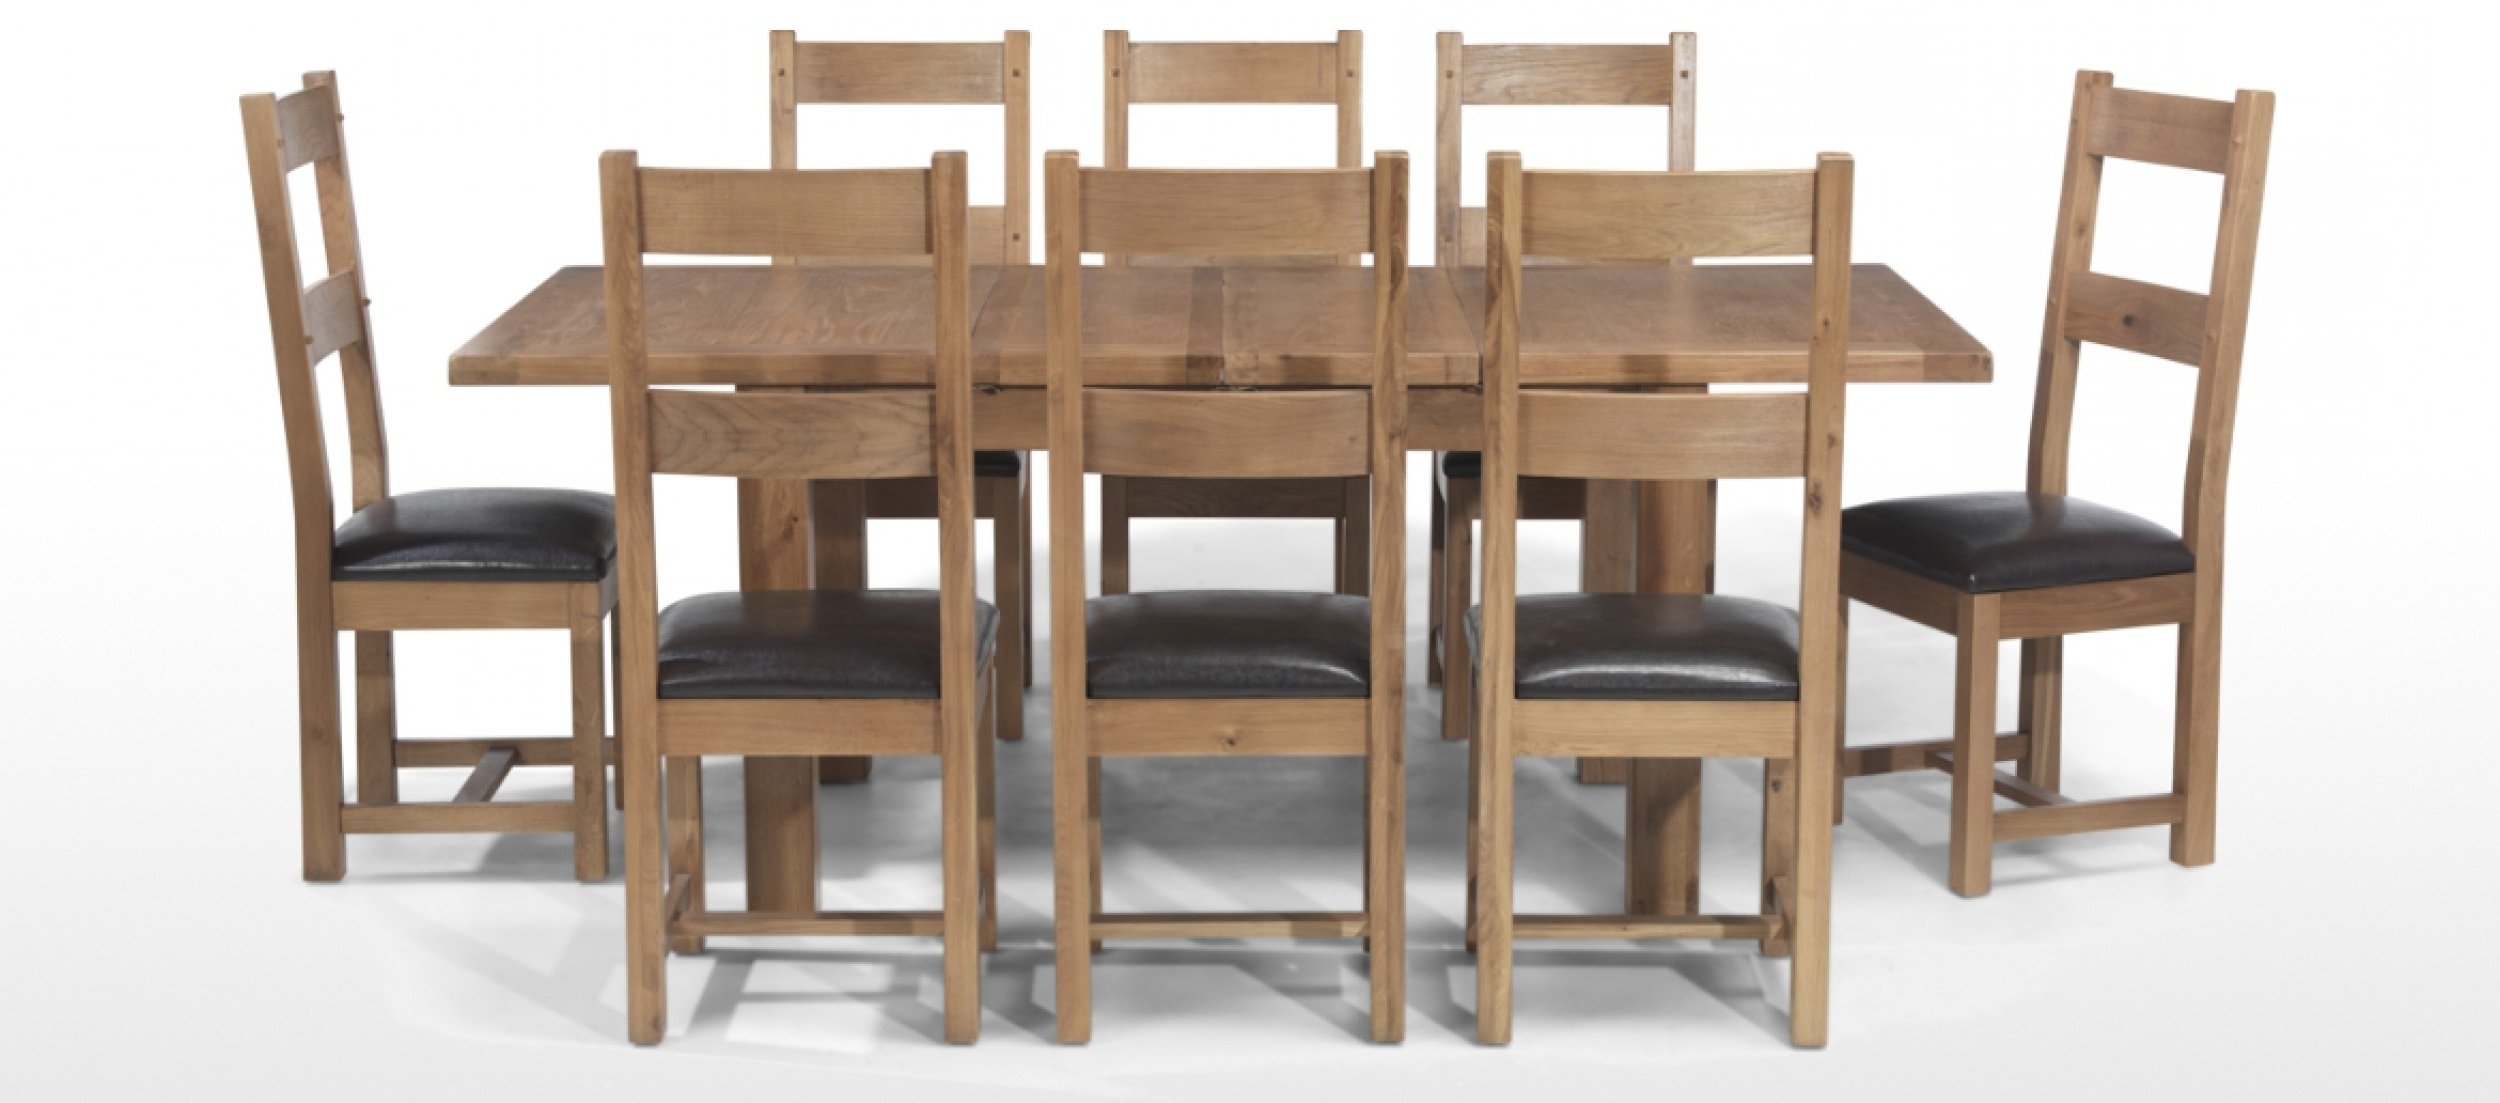 8 Dining Tables for Most Up-to-Date Rustic Oak 132-198 Cm Extending Dining Table And 8 Chairs